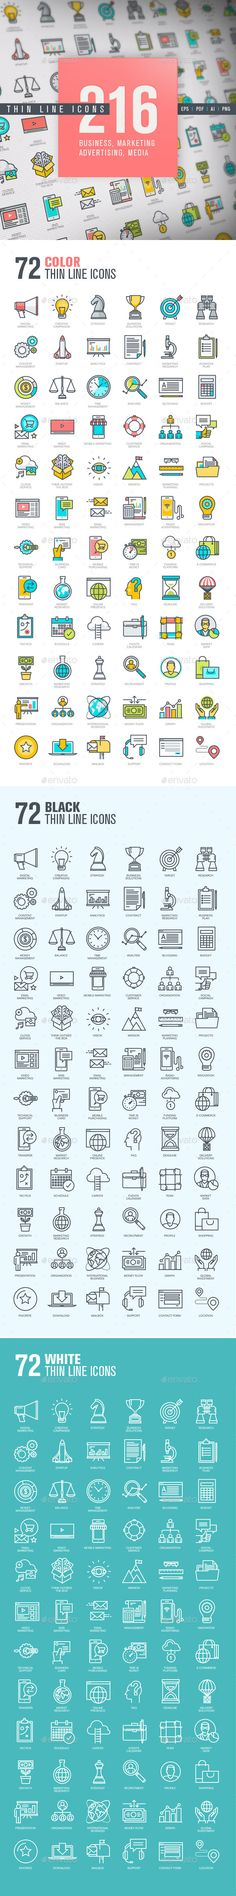 Set of Thin Line Icons for Business and Marketing #design Download: http://graphicriver.net/item/set-of-thin-line-icons-for-business-and-marketing/12118017?ref=ksioks